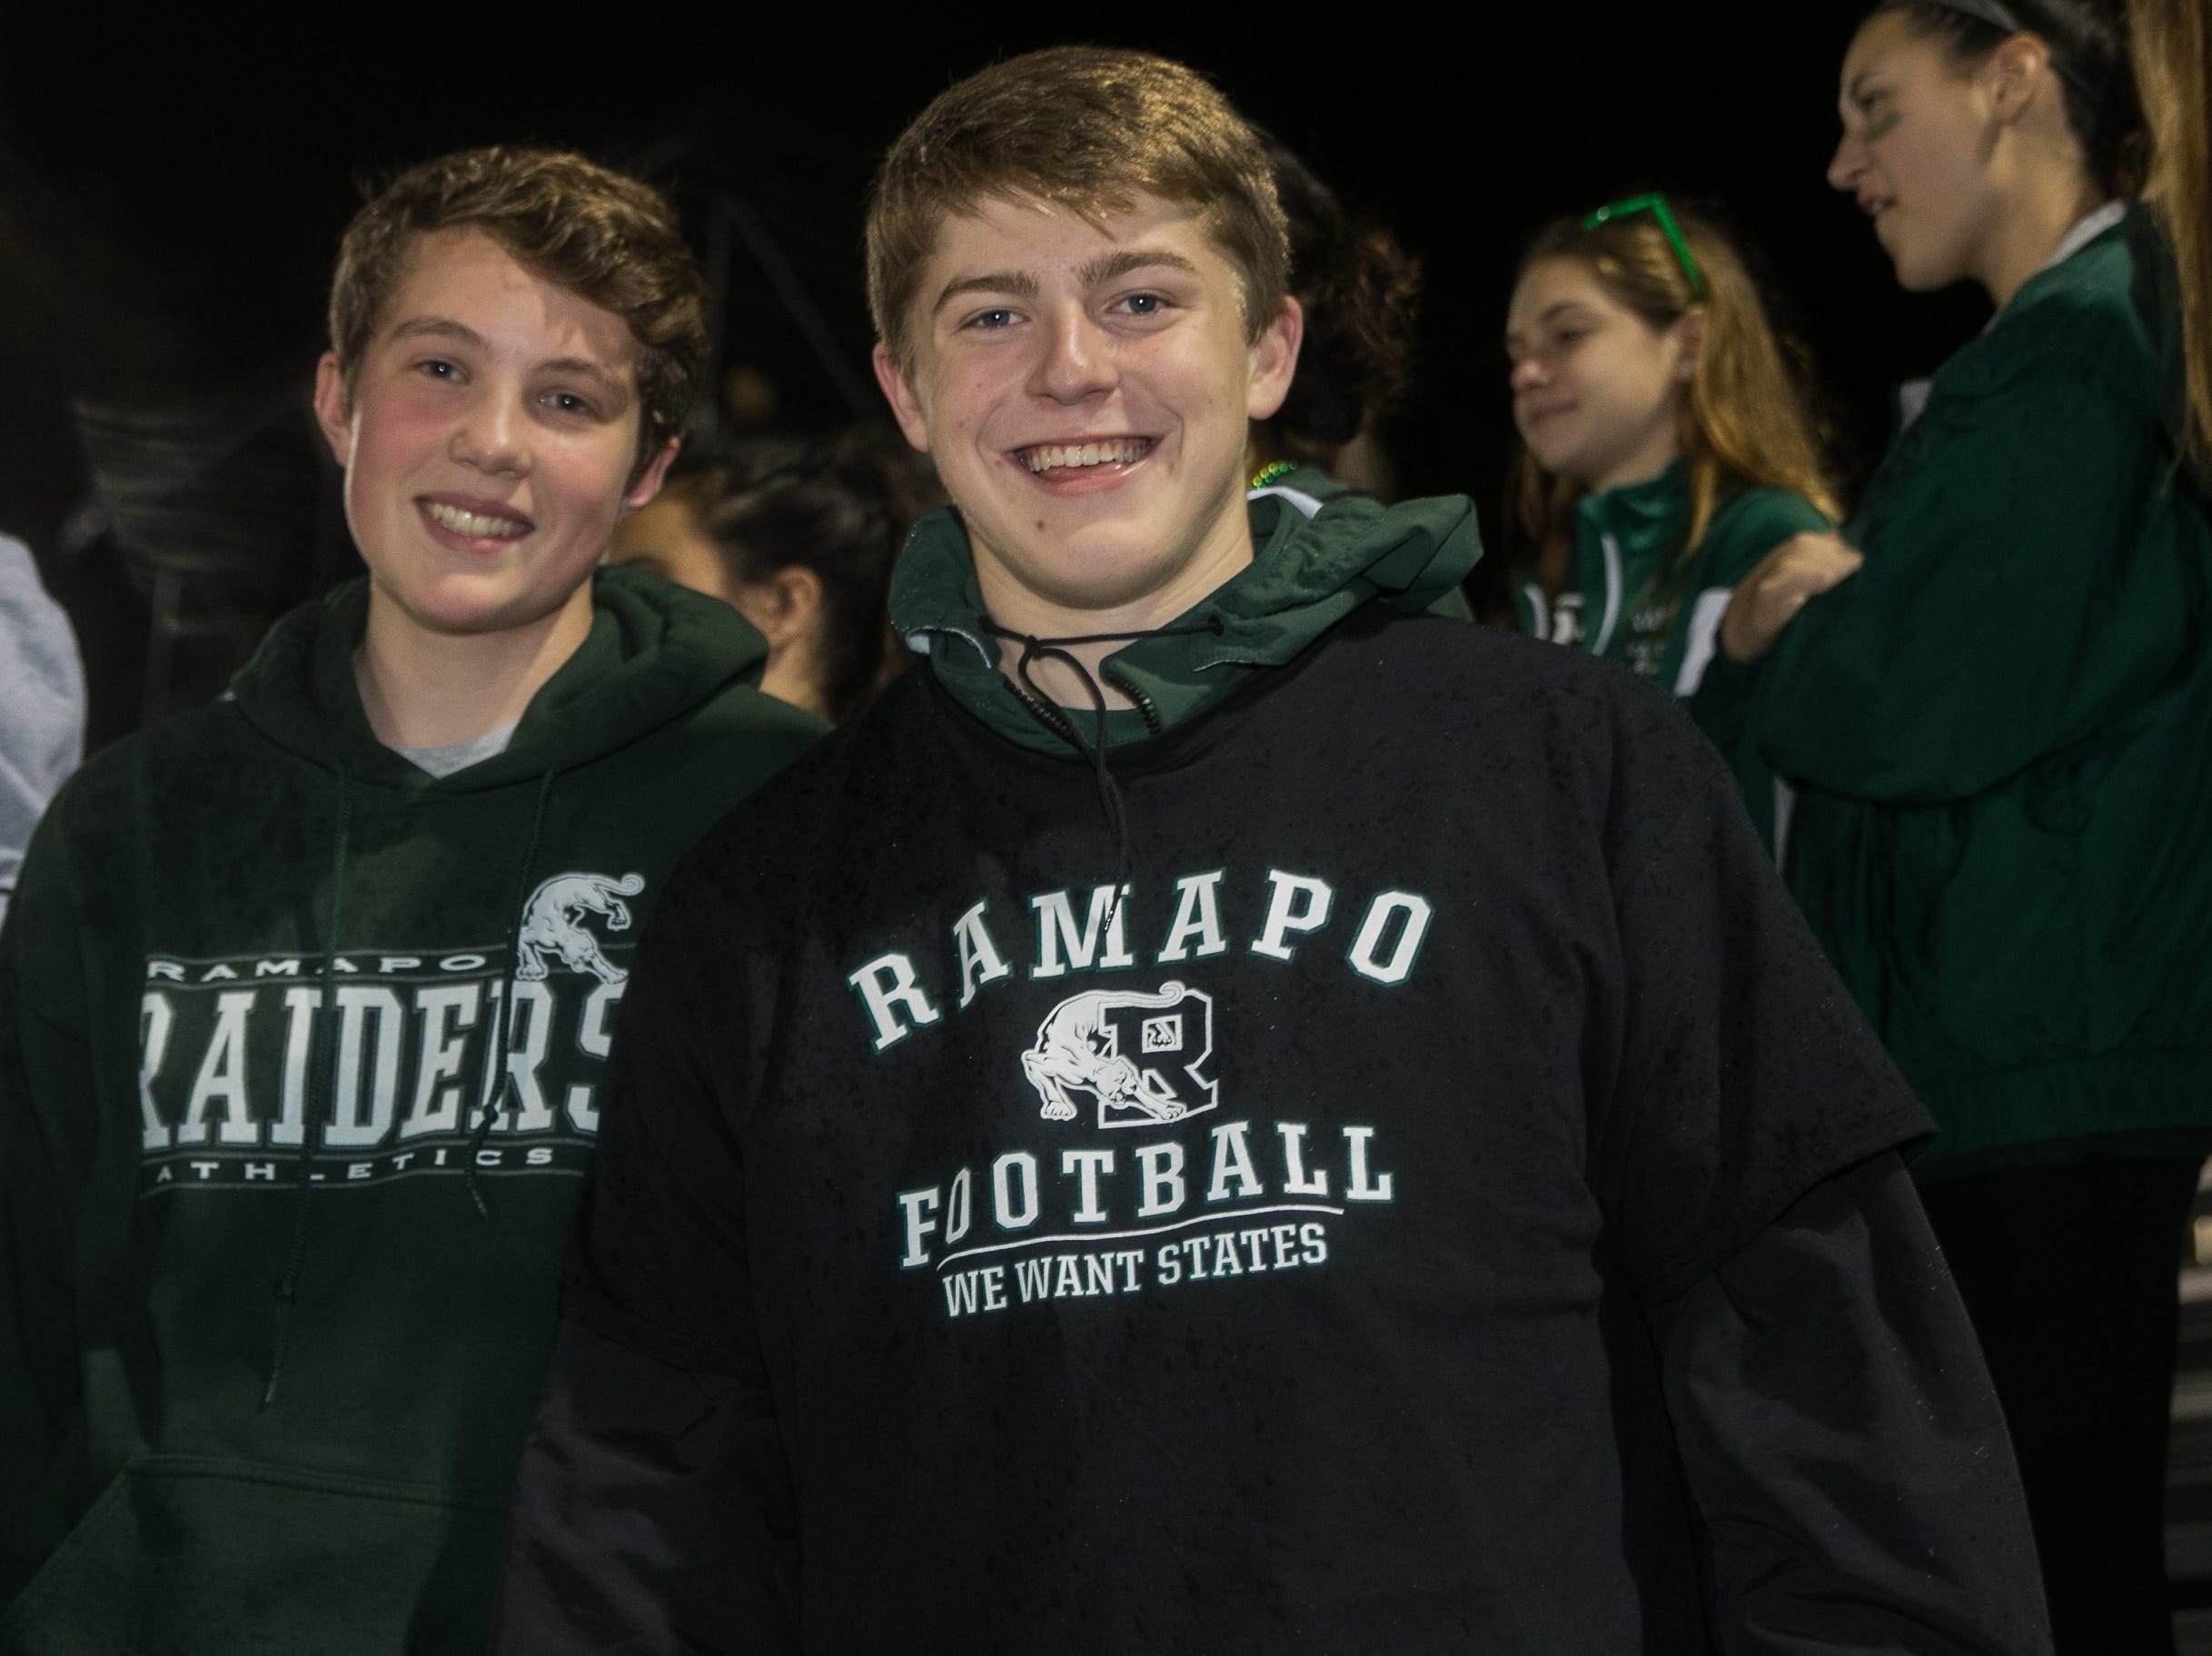 Northern Valley Demarest vs Ramapo High School Conference playoff game held at Ramapo High School in Franklin Lakes.11/02/2018